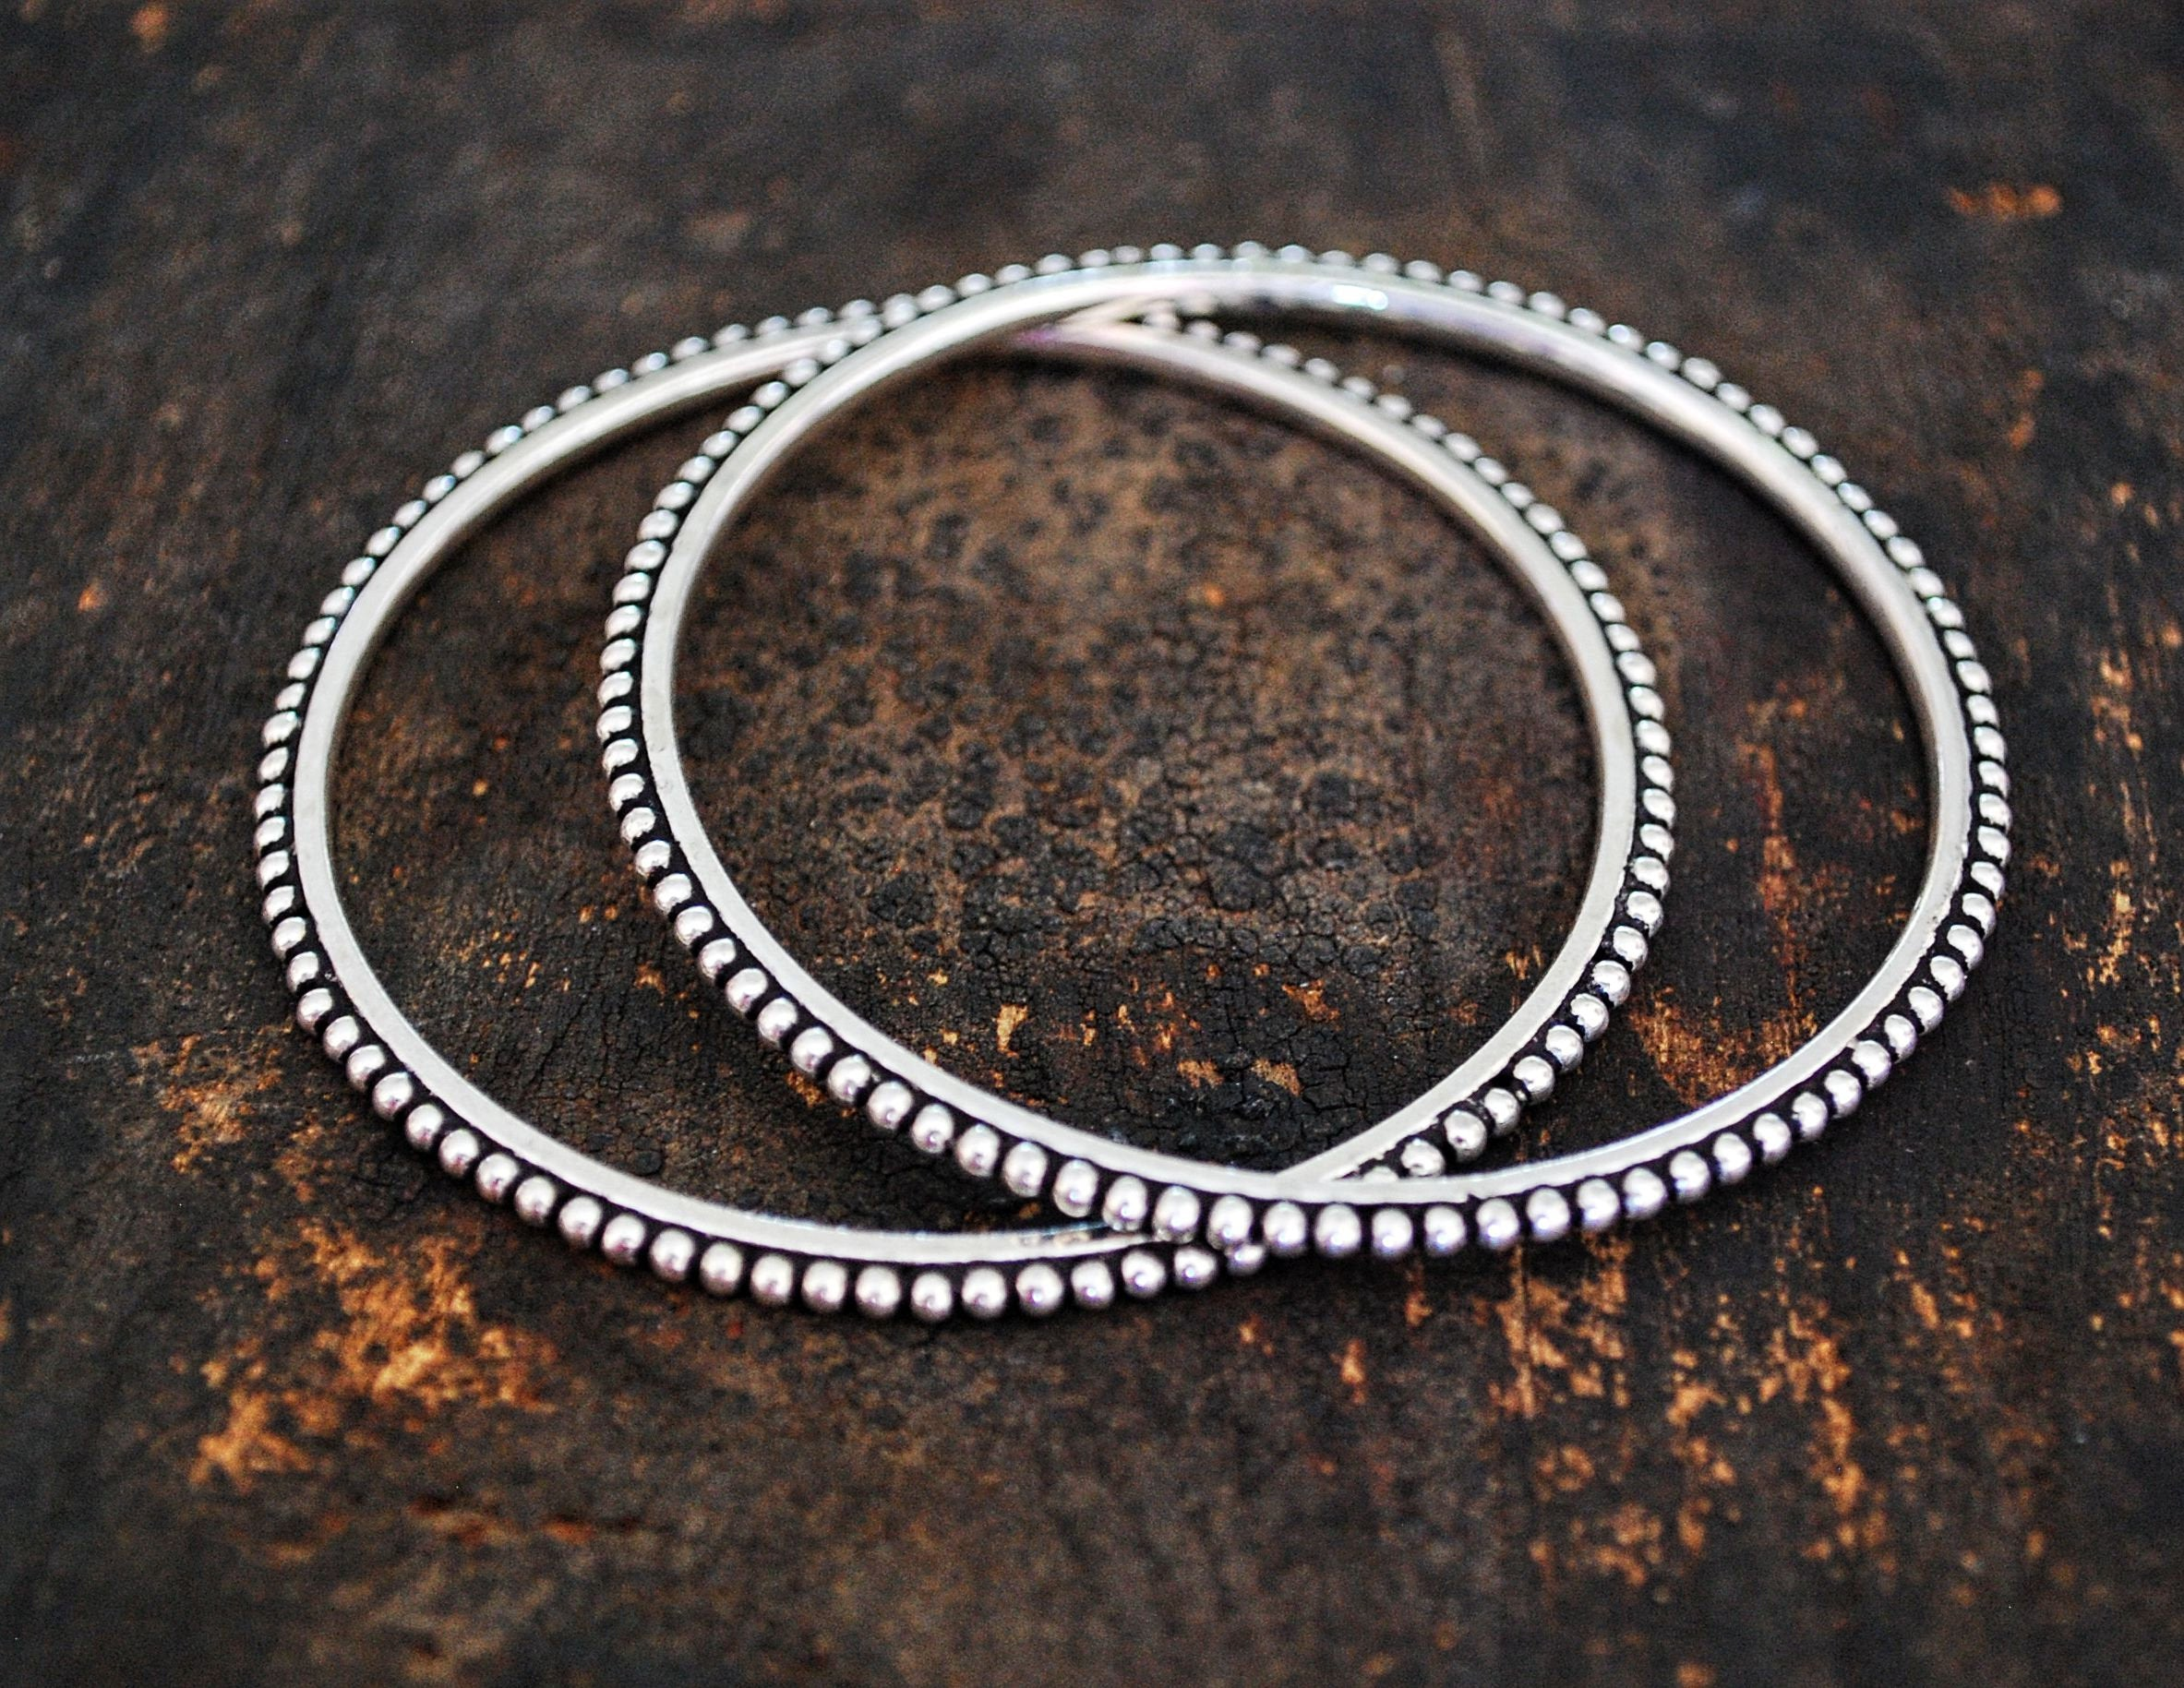 Rajasthani Silver Bracelet - SMALL - Indian Silver Bangle Bracelet - Rajasthani Jewelry - Indian Jewelry - Ethnic Jewelry - Ethnic Bracelet